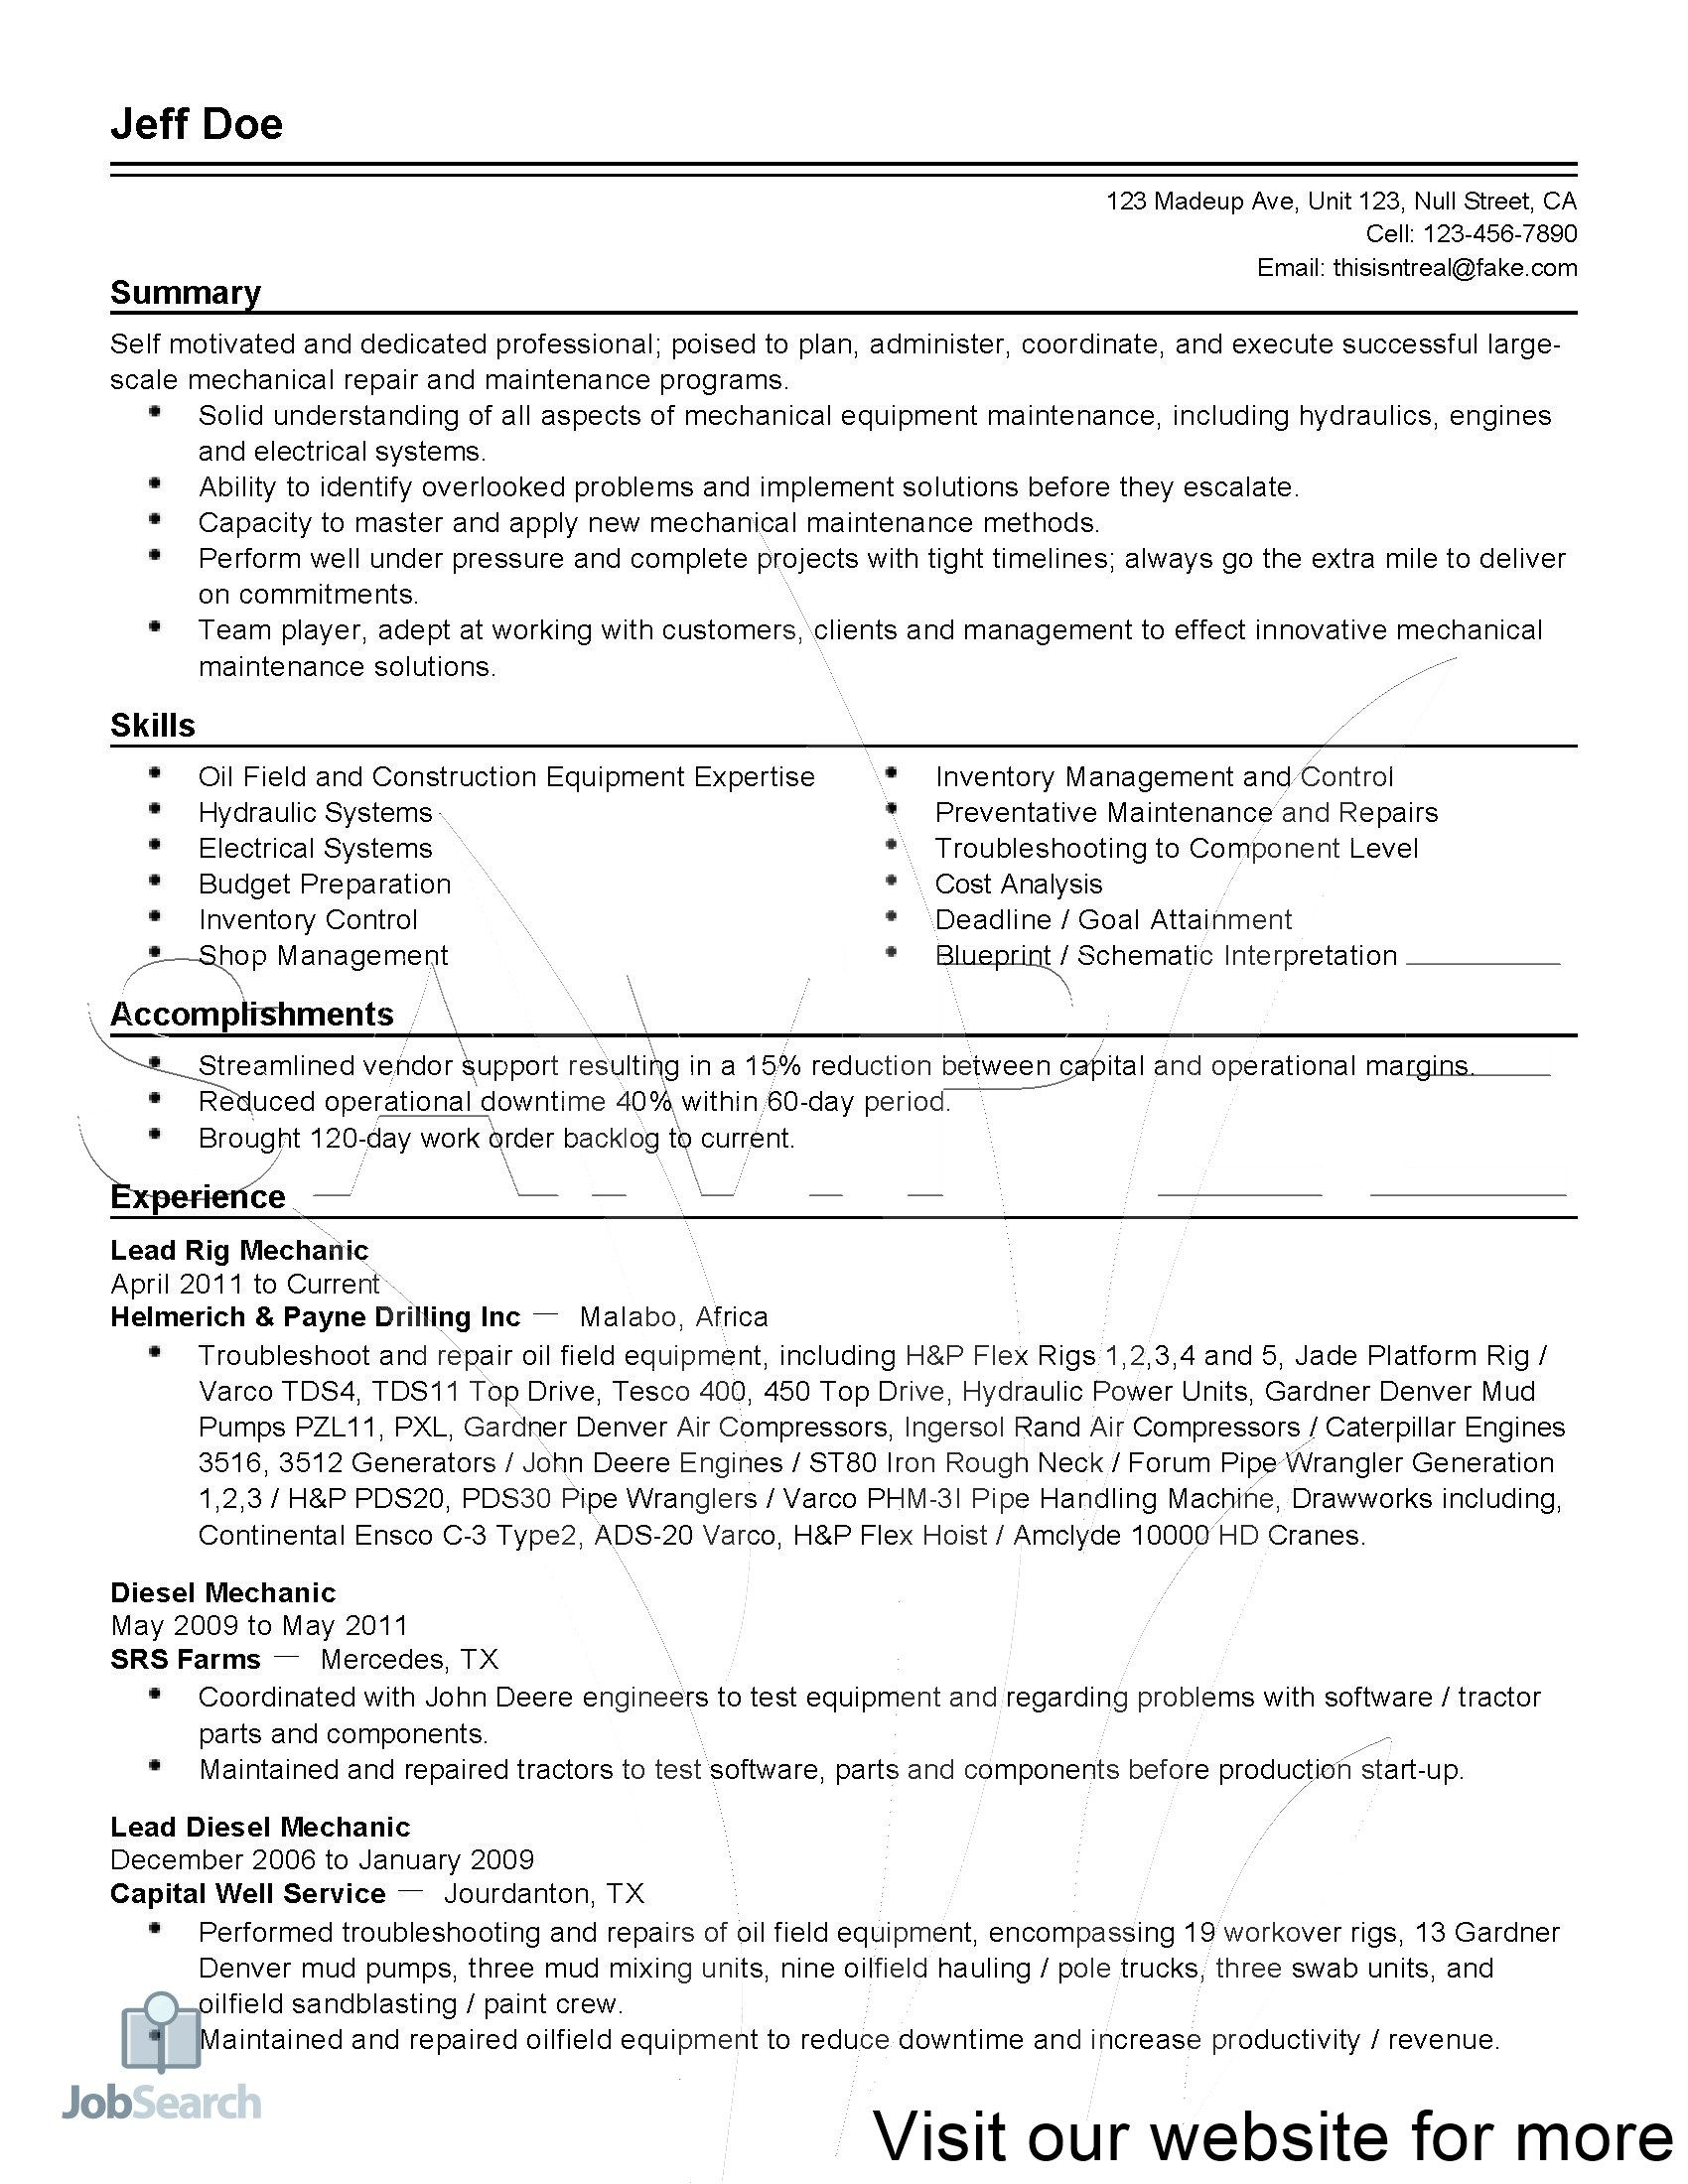 accounting resume template free in 2020 Resume examples